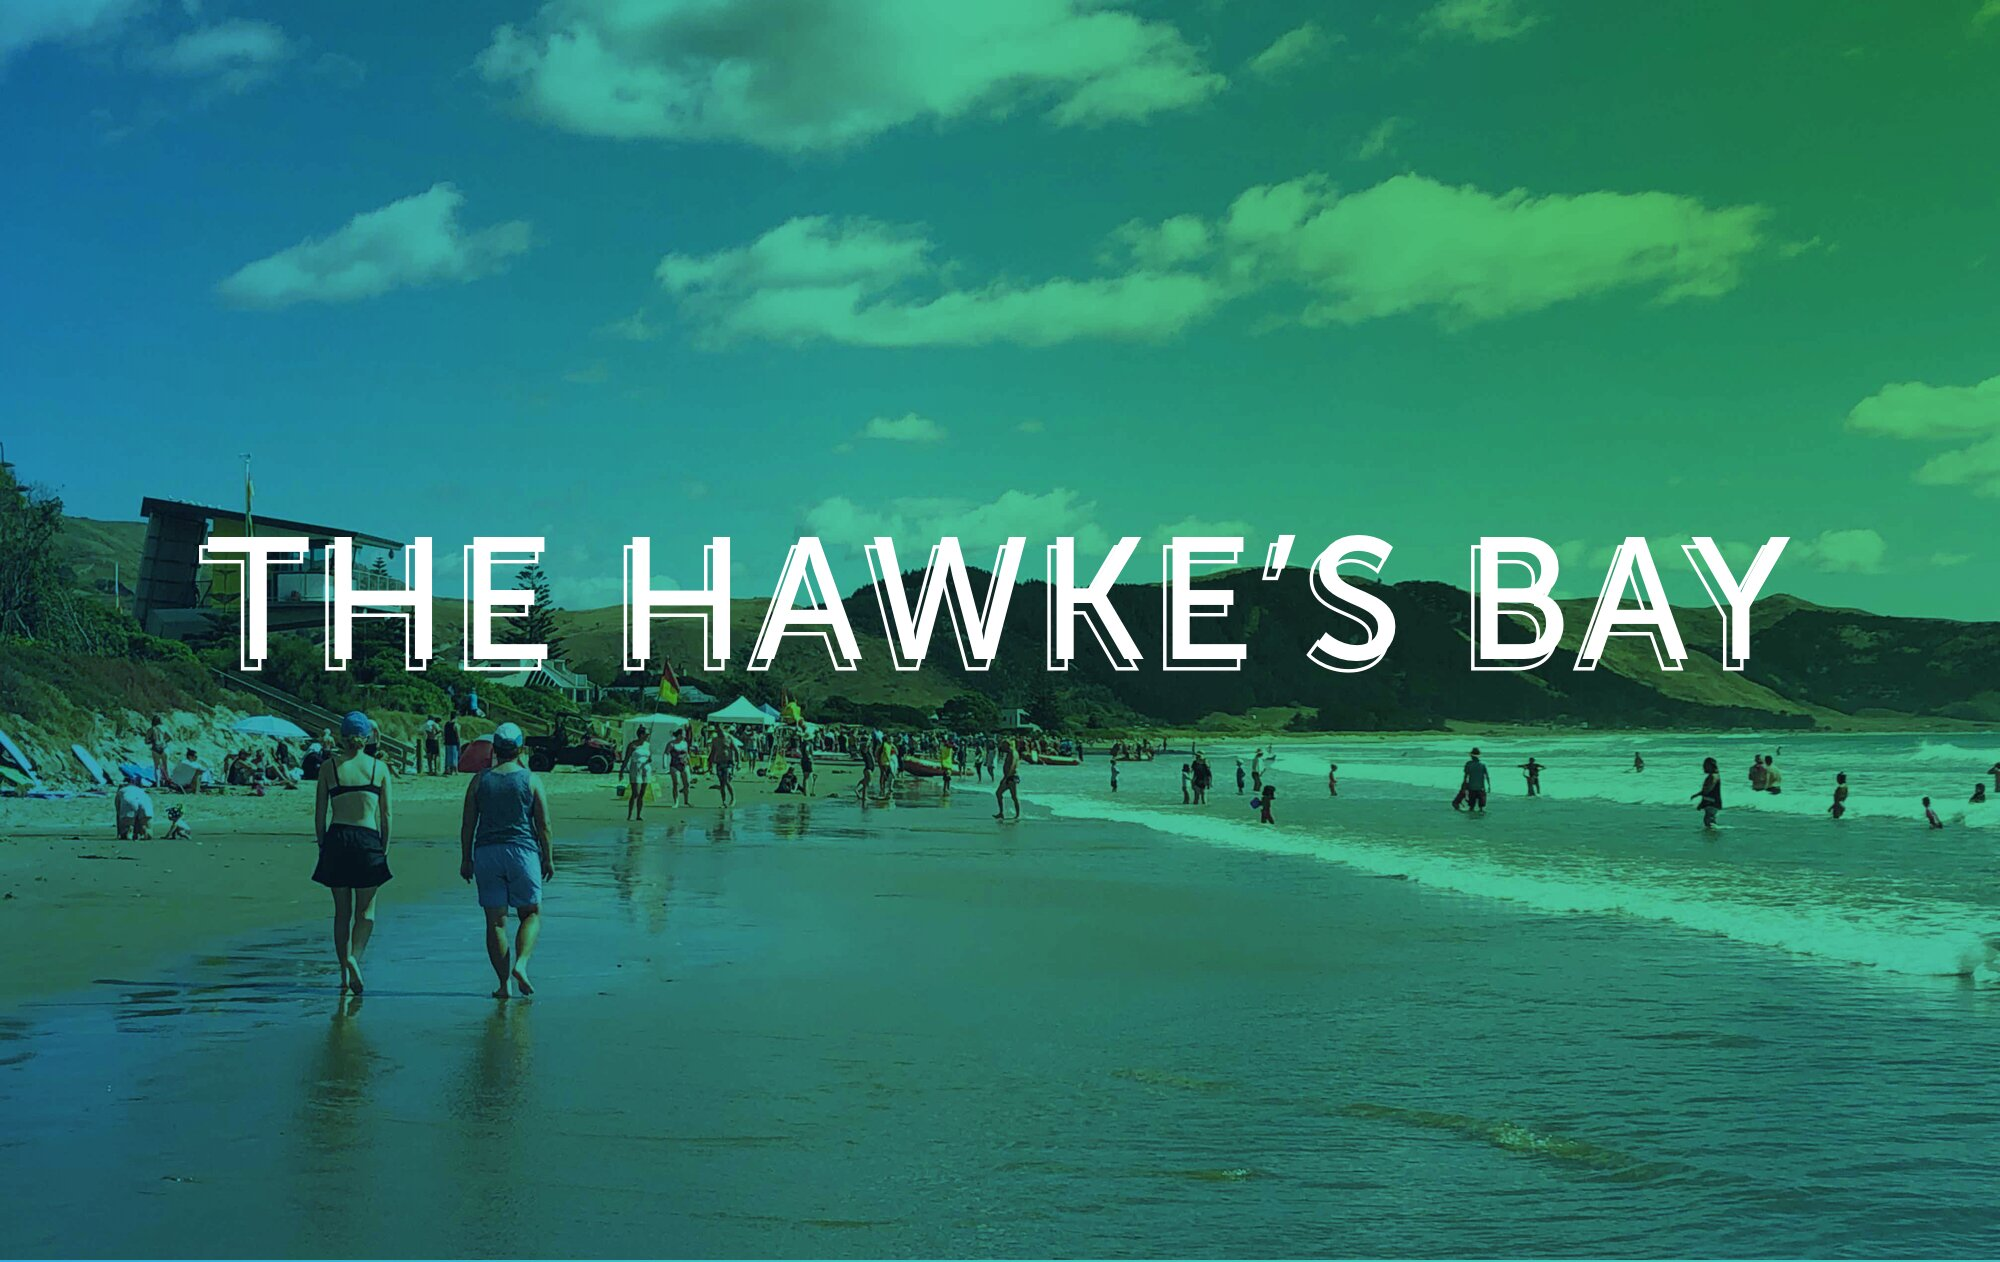 The Hawke's Bay